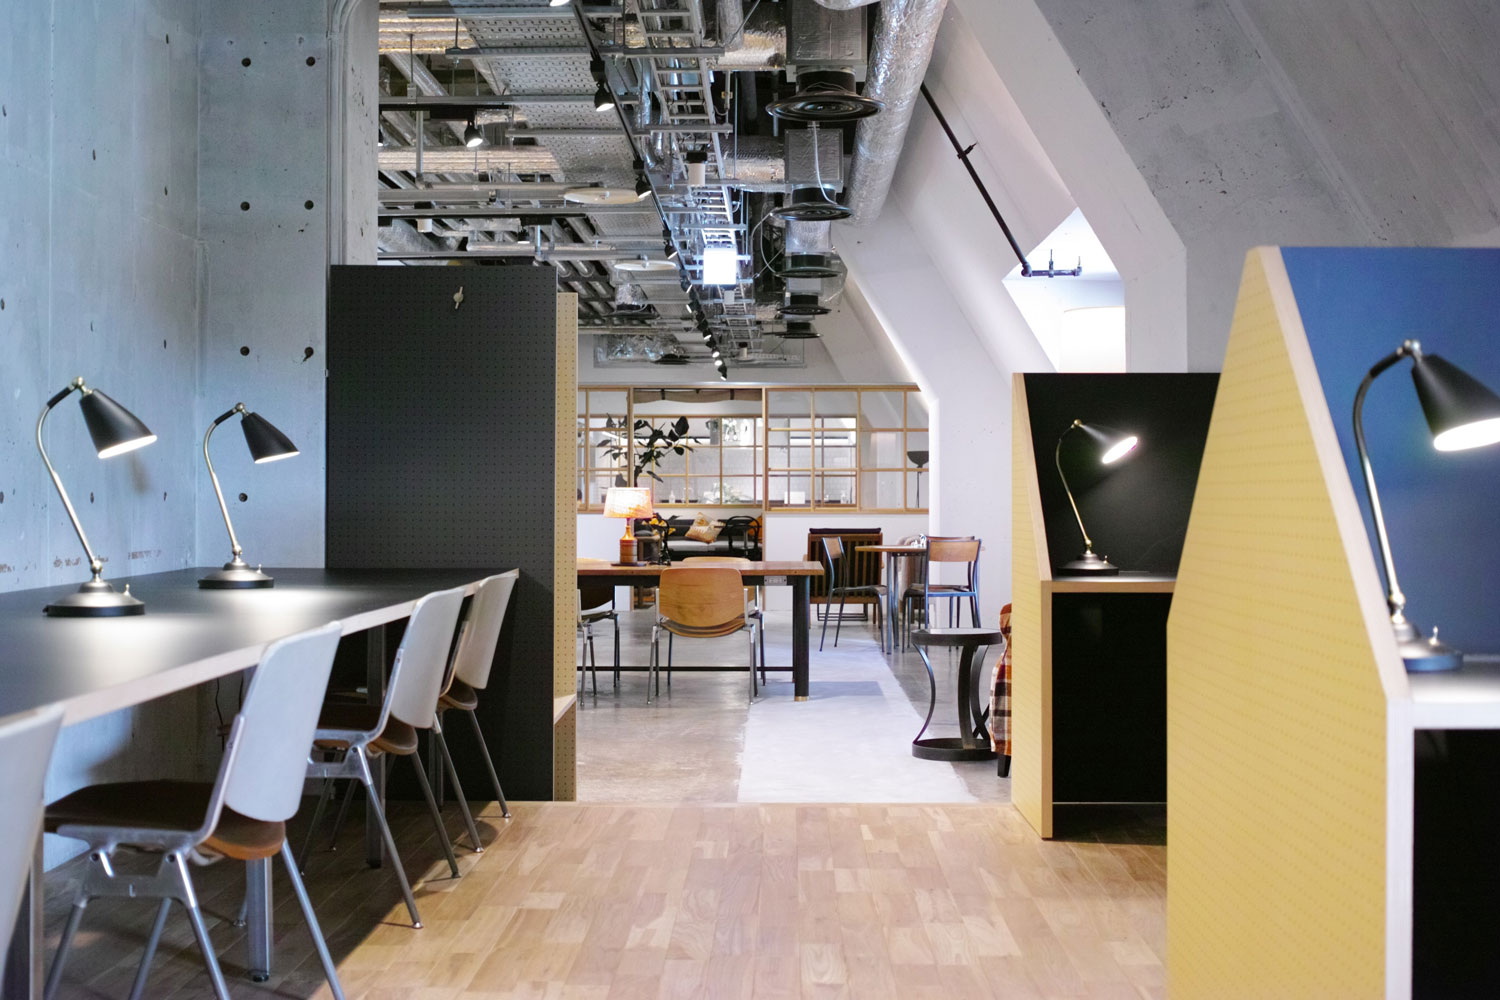 Multi-purpose shared space by Hiroyuki Tanaka in Japan | Yellowtrace